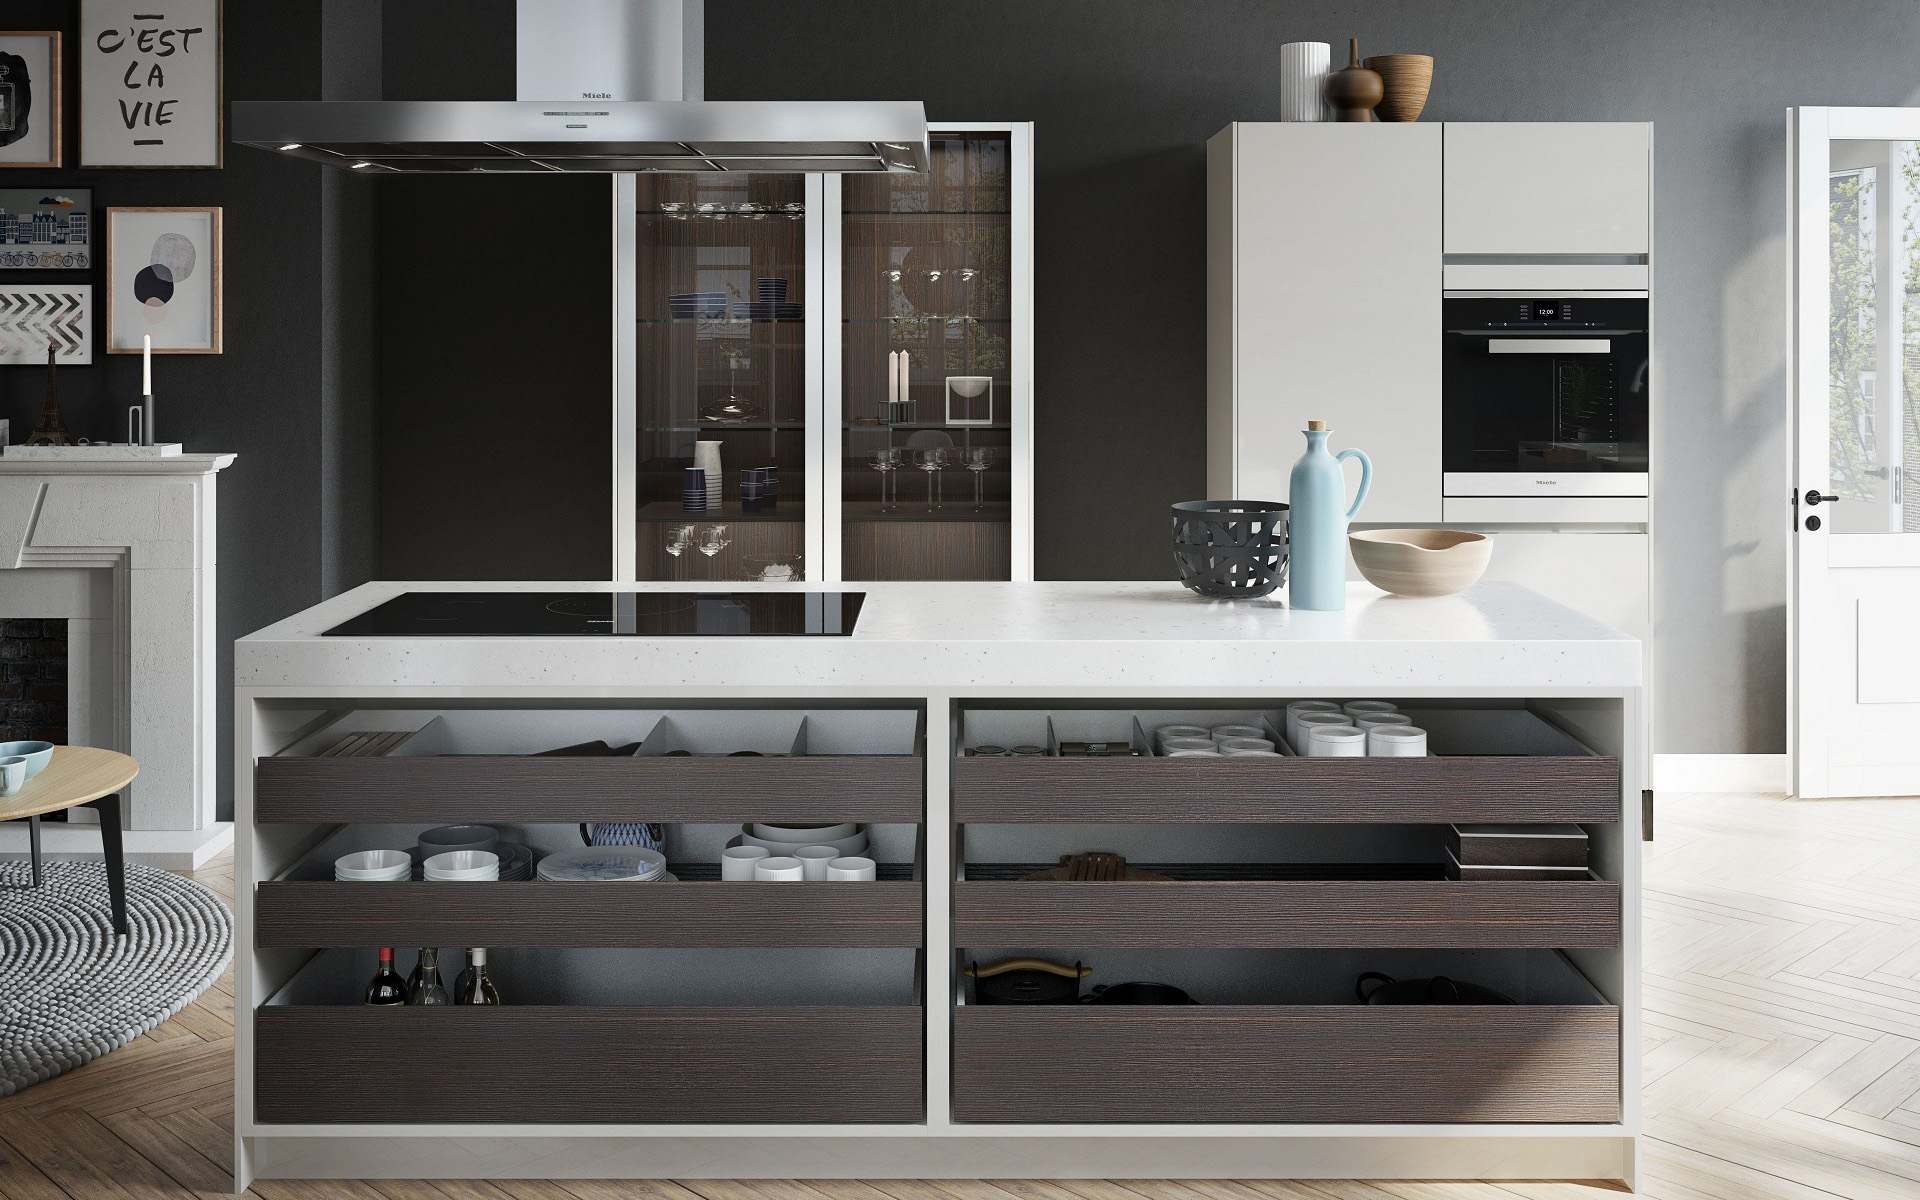 SieMatic kitchen island from the Urban style collection with countertop made from composite stone